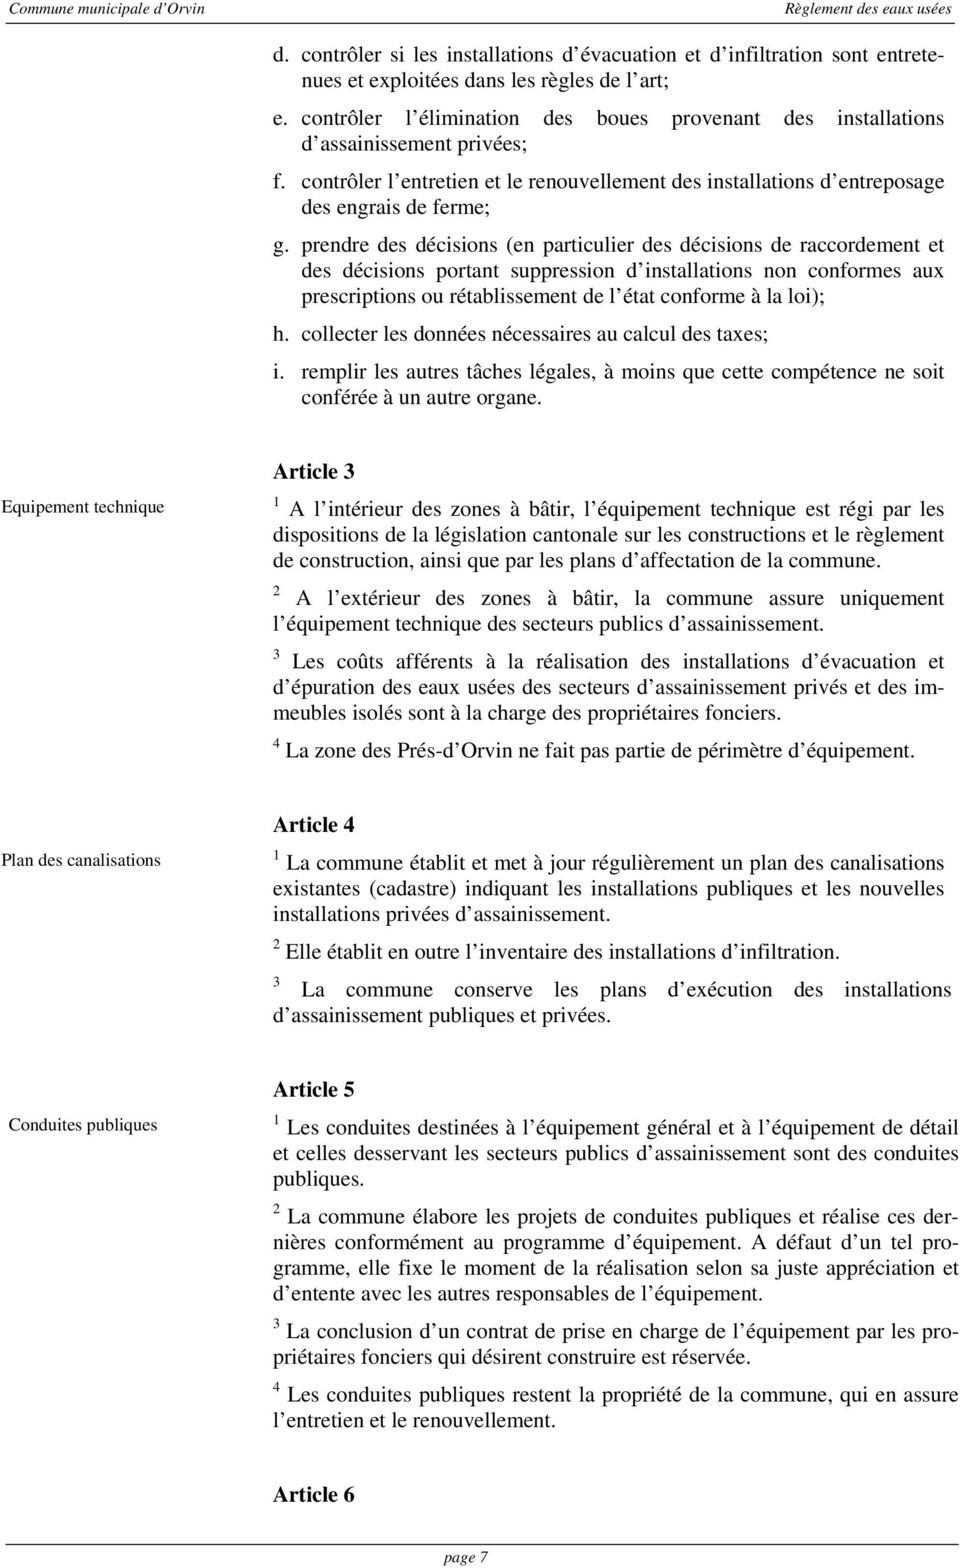 prendre des décisions (en particulier des décisions de raccordement et des décisions portant suppression d installations non conformes aux prescriptions ou rétablissement de l état conforme à la